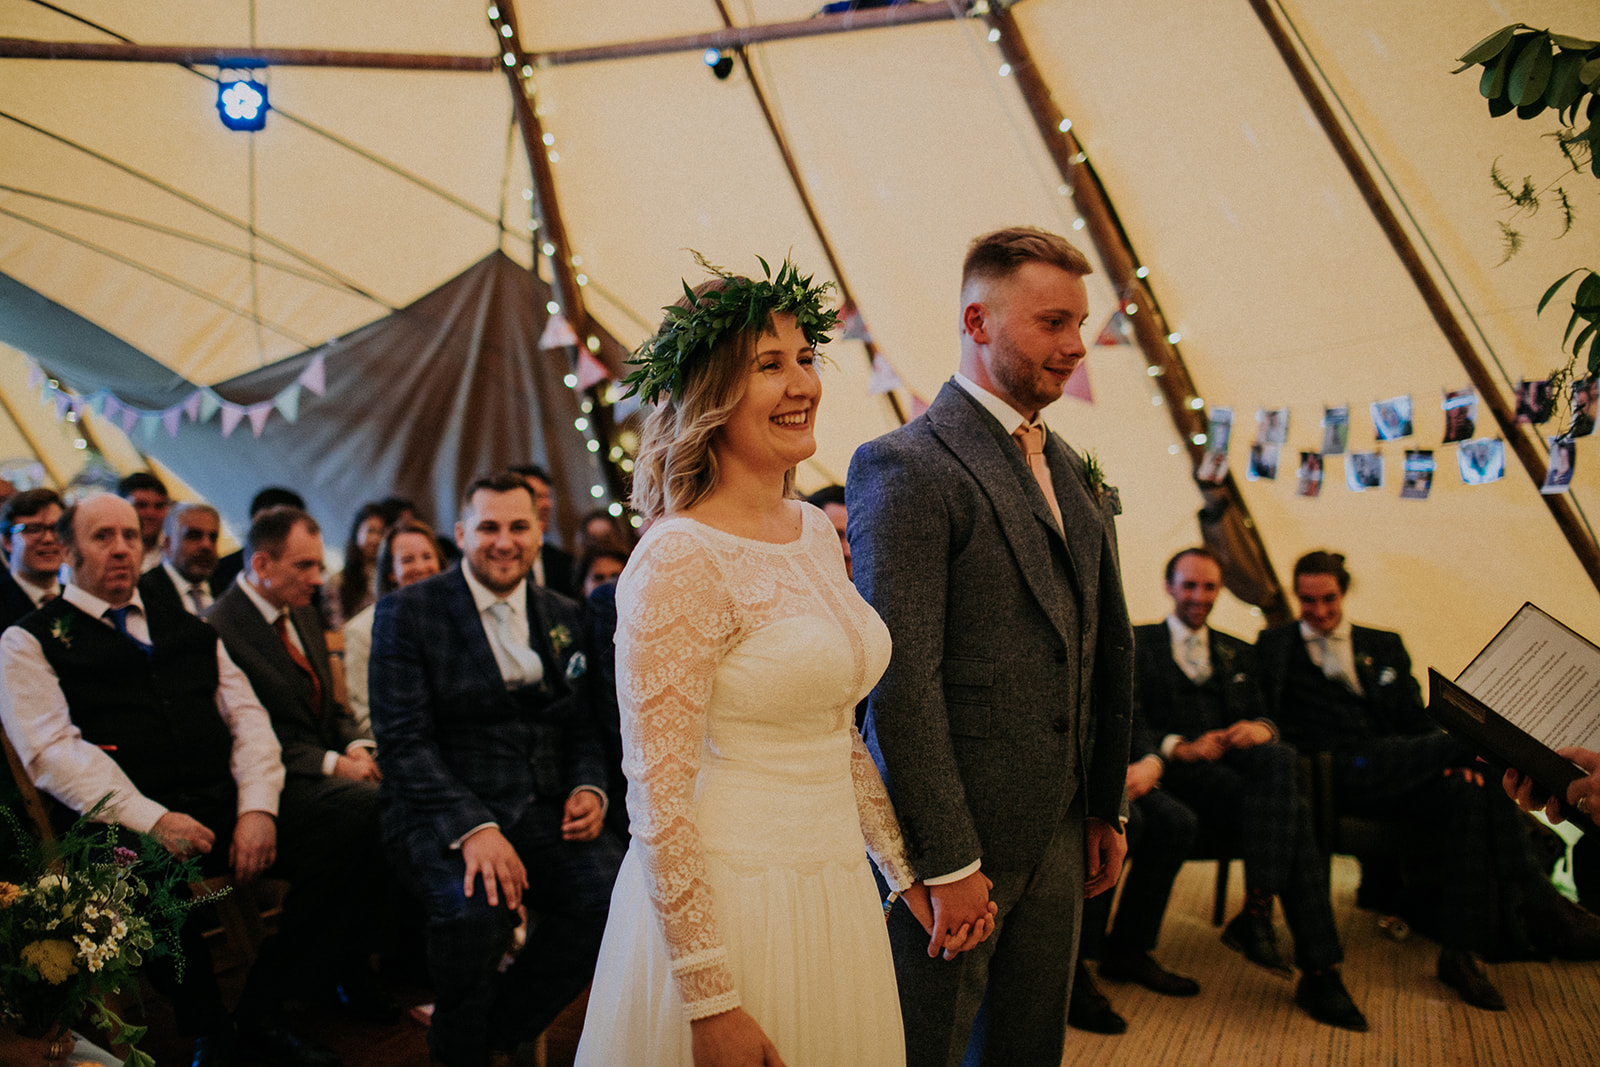 tipi wedding ceremony inside teepee at Cattows Farm Wedding